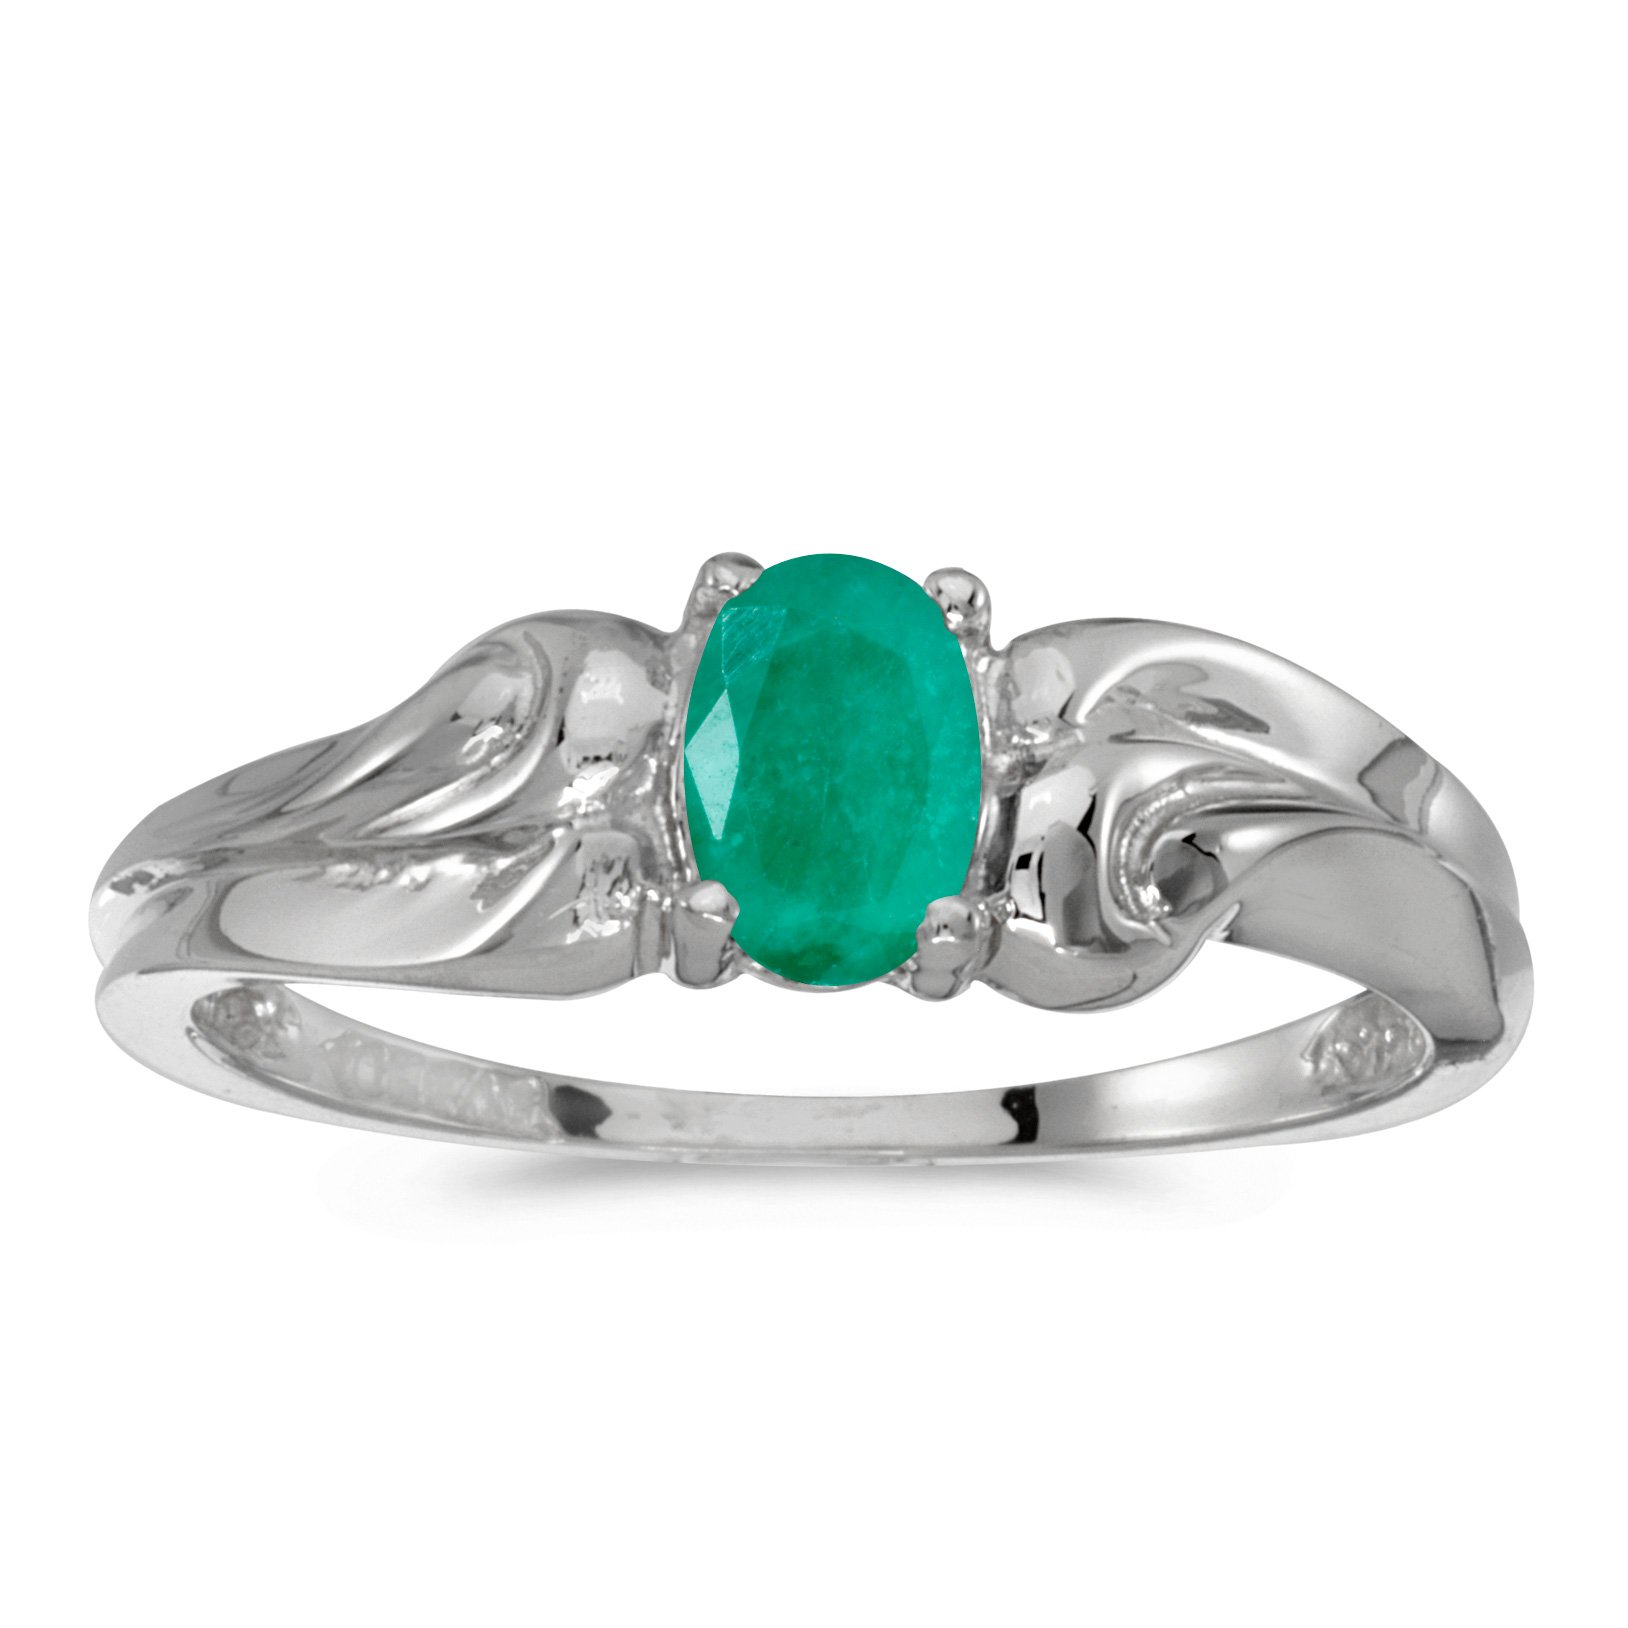 14k White Gold Oval Emerald Ring (Size 8.5)